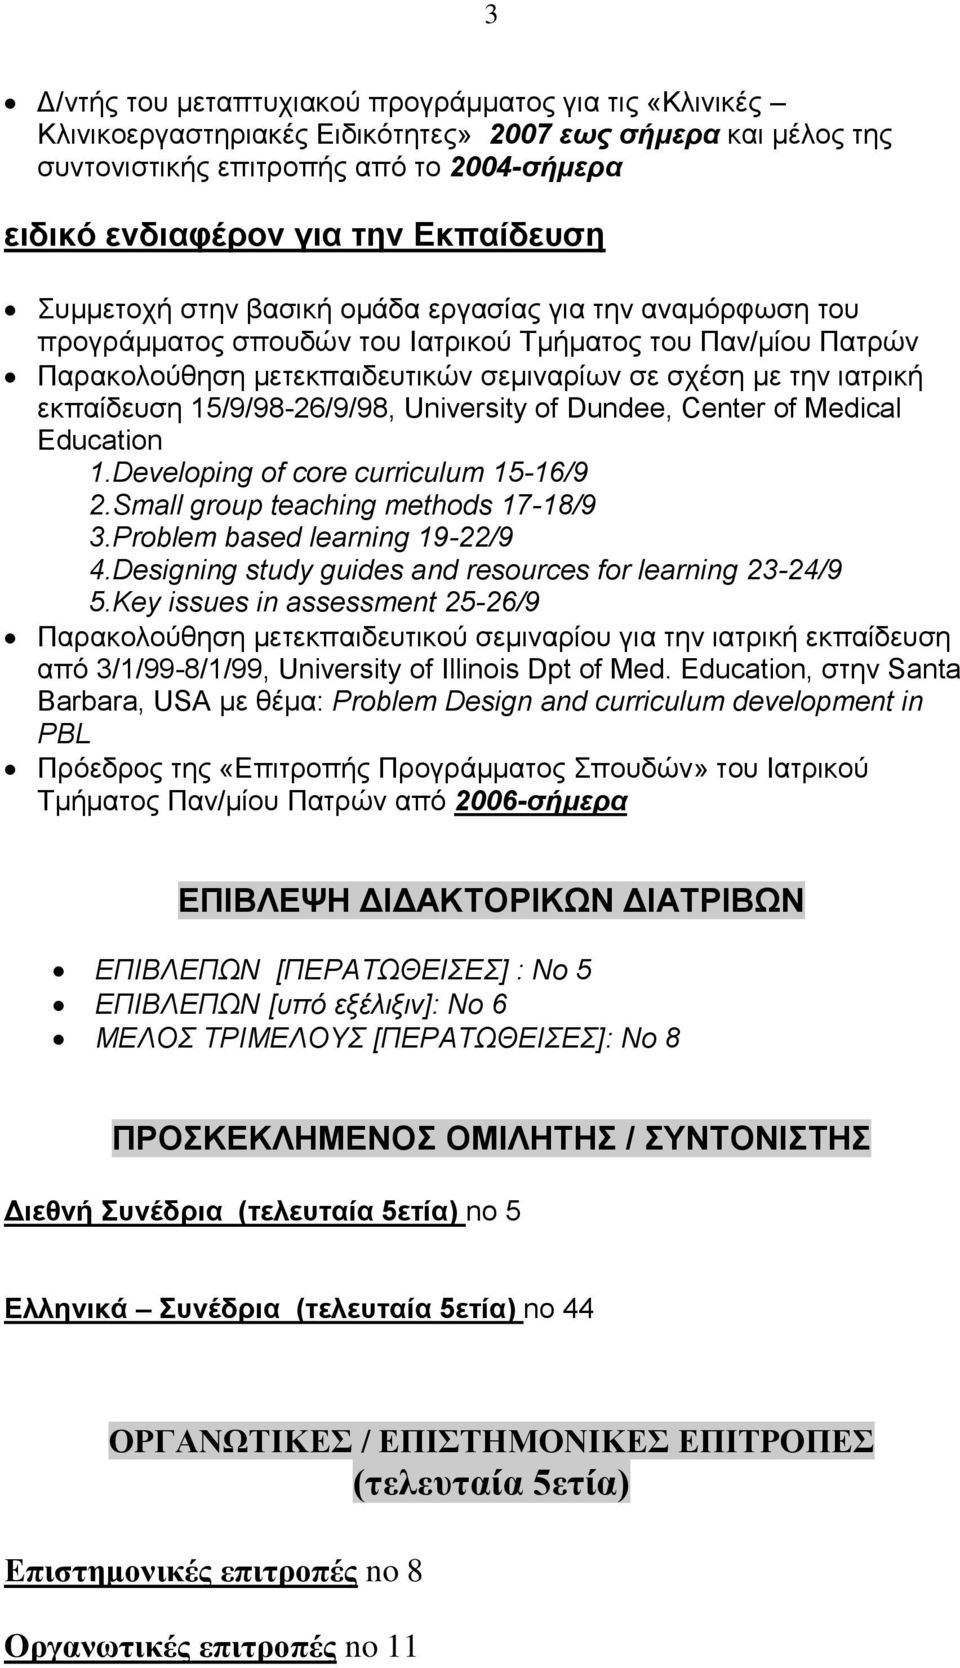 εκπαίδευση 15/9/98-26/9/98, University of Dundee, Center of Medical Education 1.Developing of core curriculum 15-16/9 2.Small group teaching methods 17-18/9 3.Problem based learning 19-22/9 4.